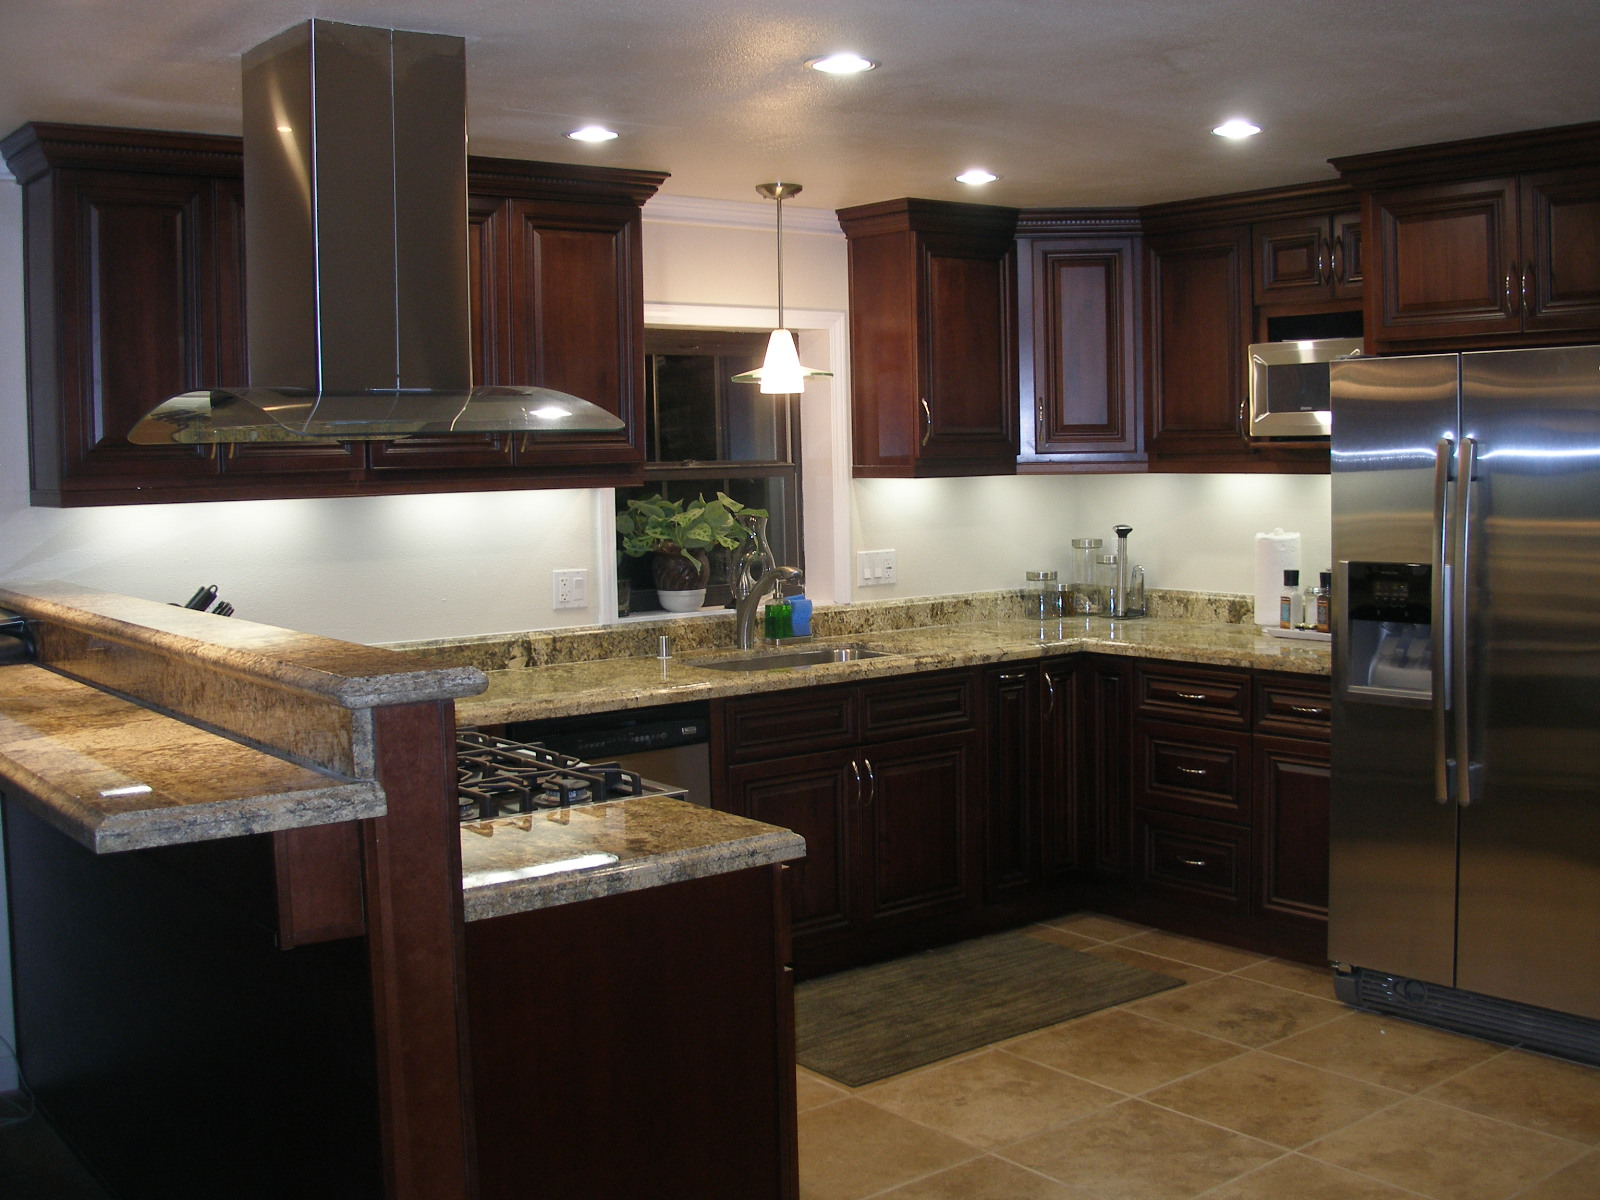 Image gallery kitchen redesign for New kitchen remodel ideas